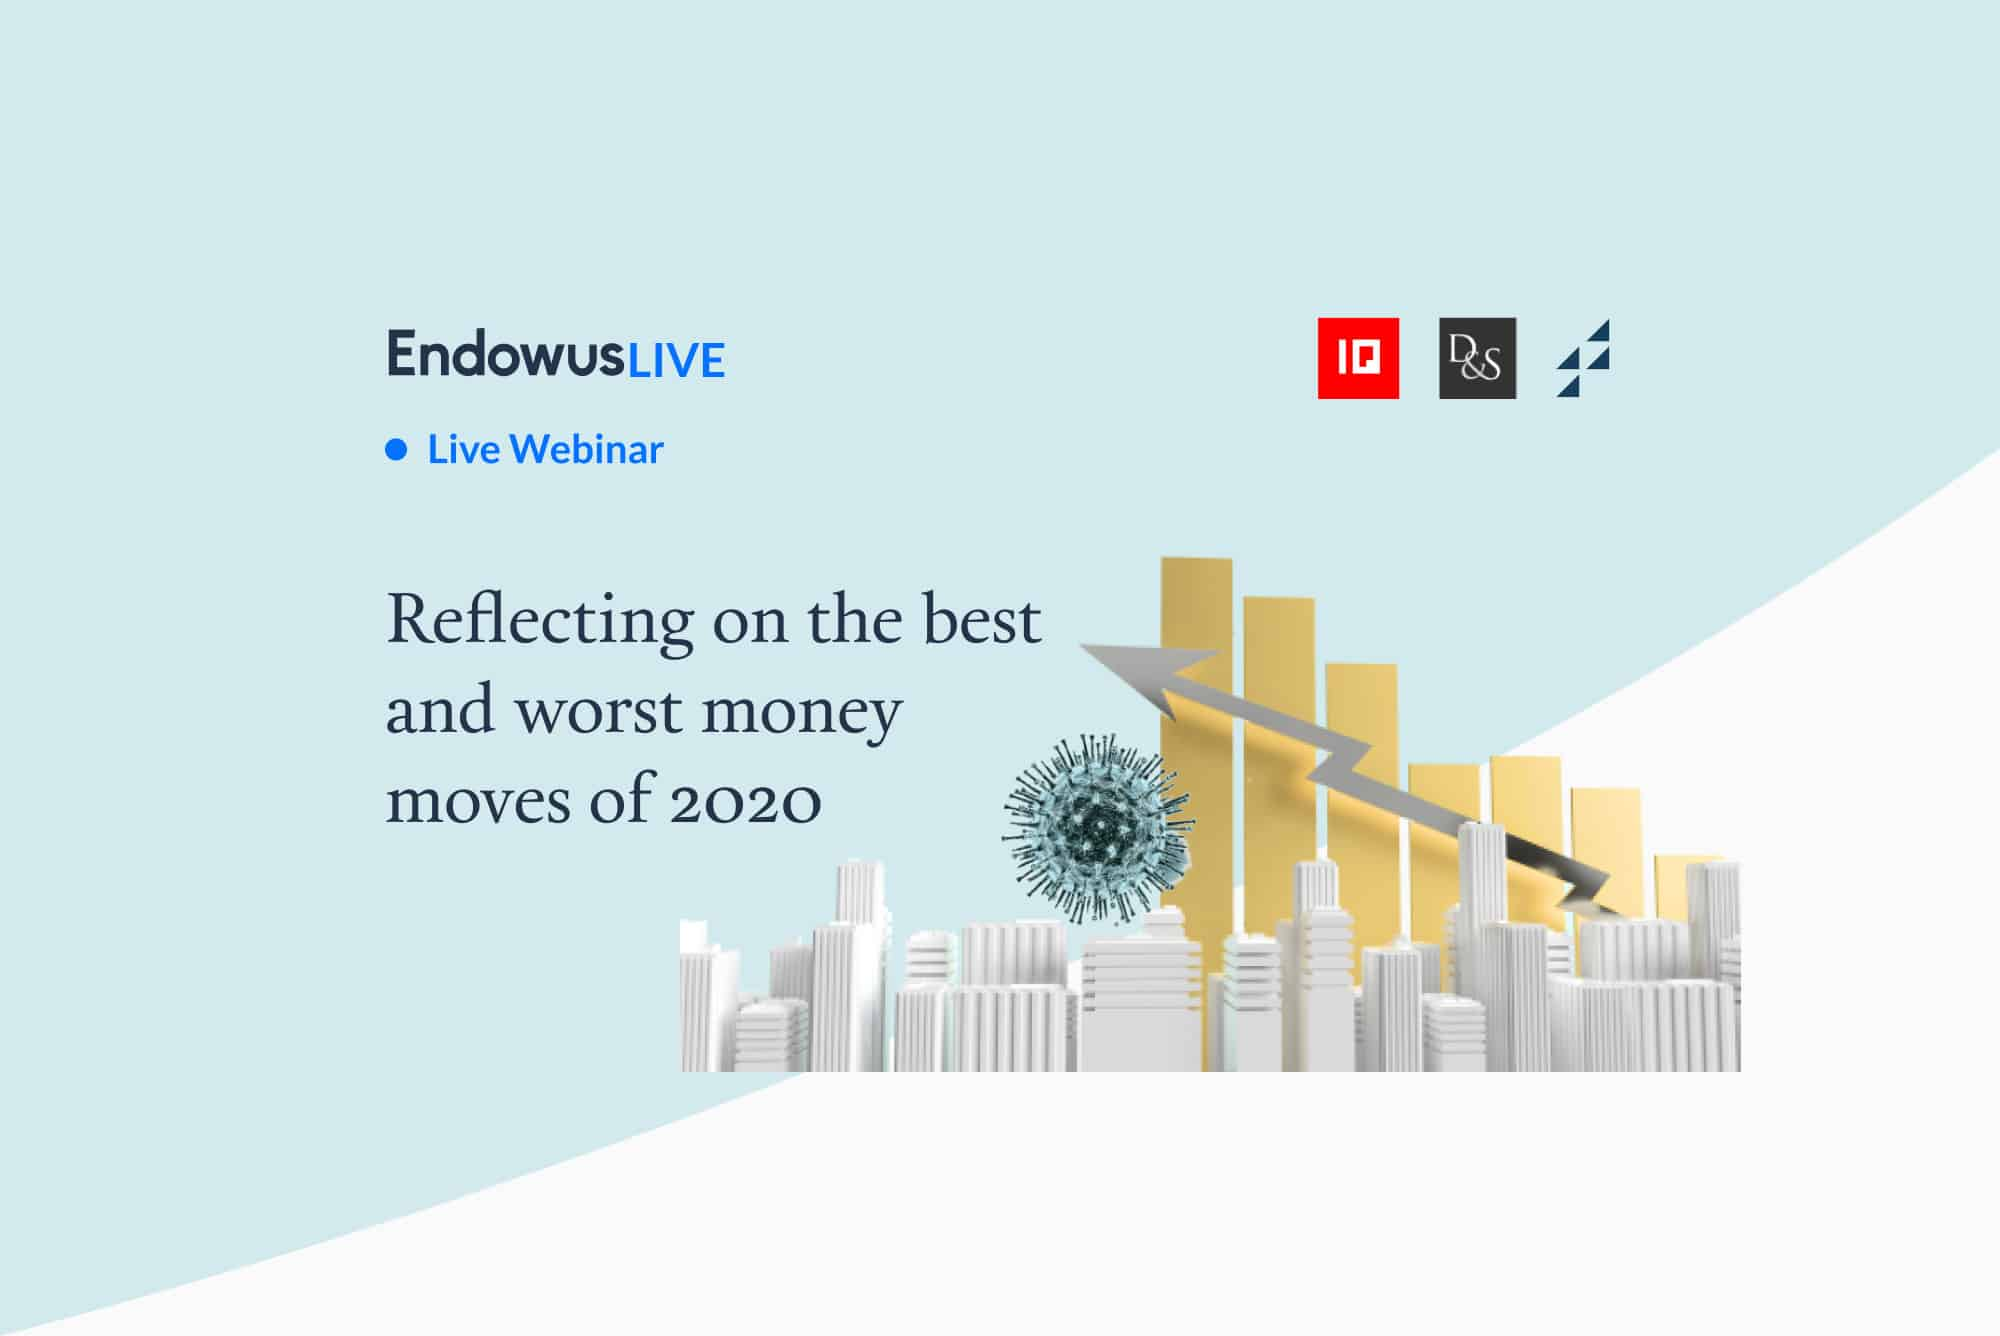 Webinar: Reflecting on the best and worst money moves of 2020